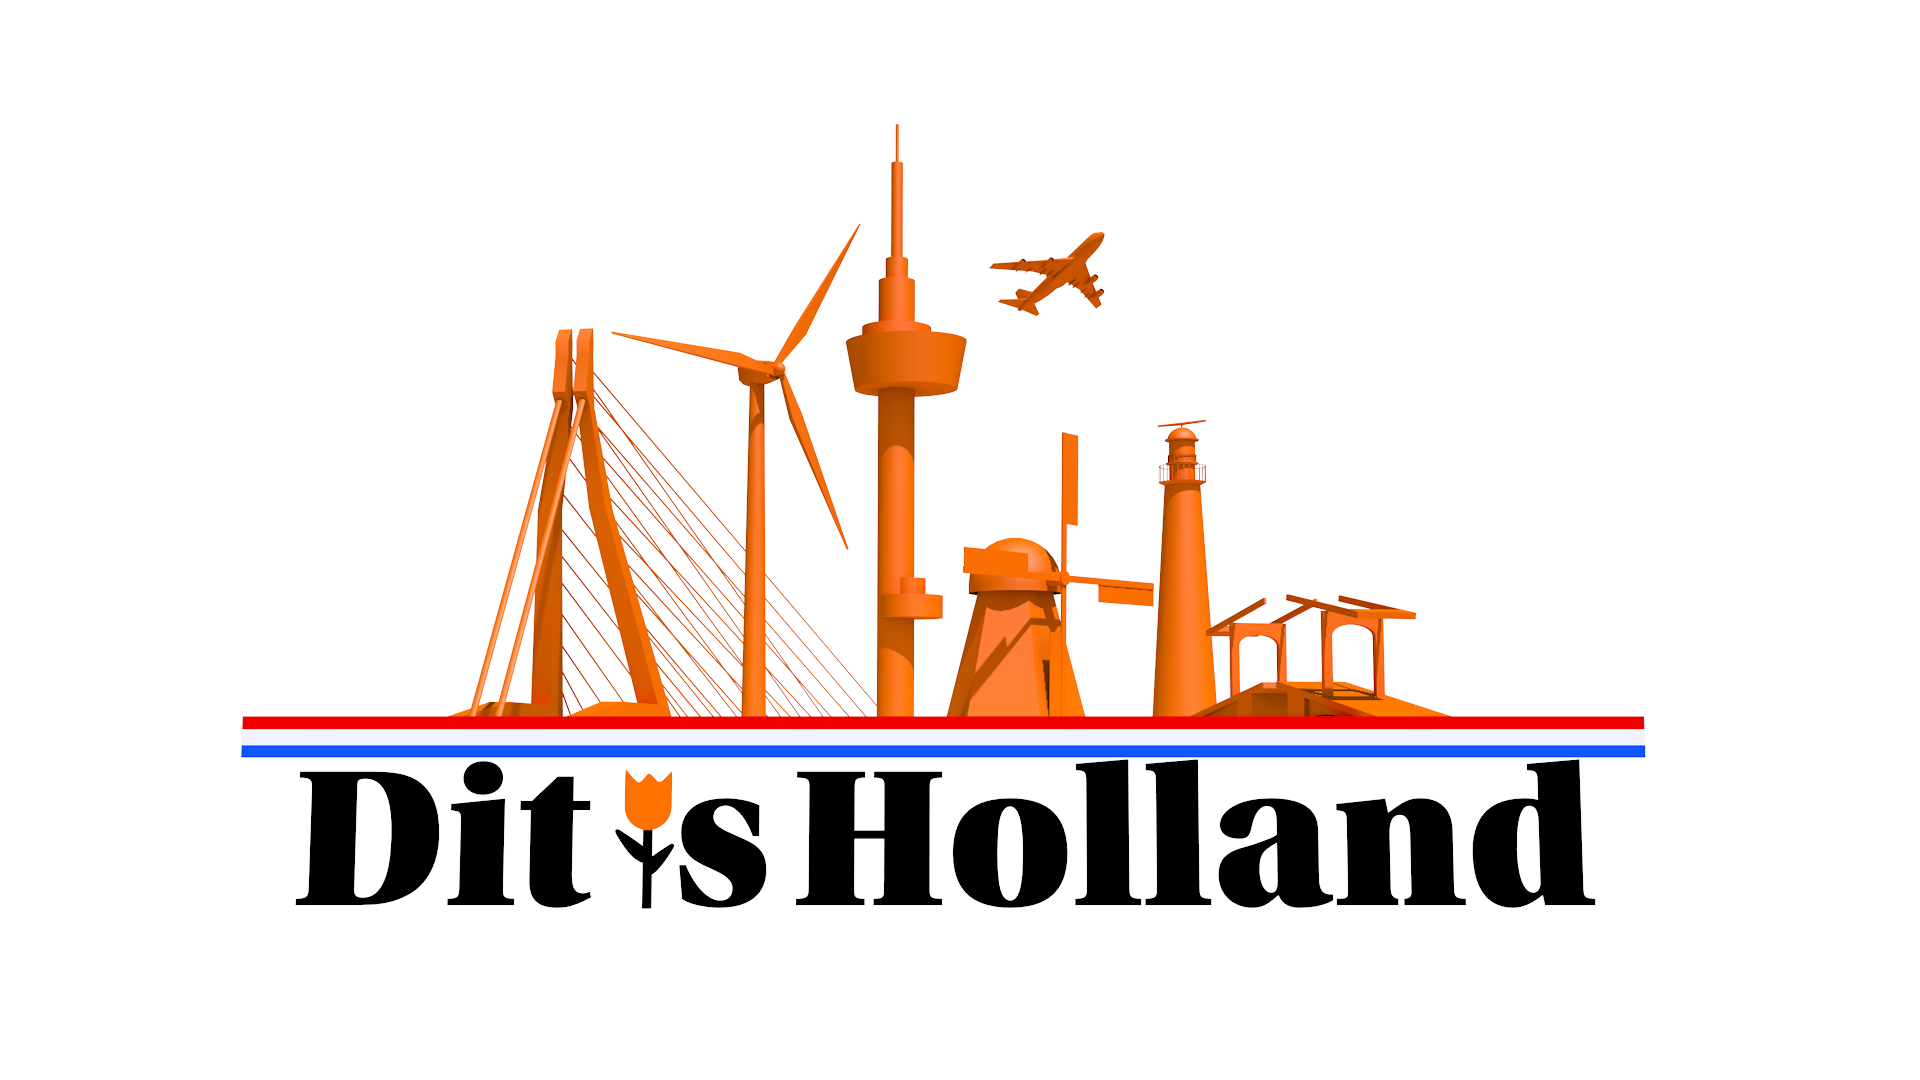 Dit is Holland